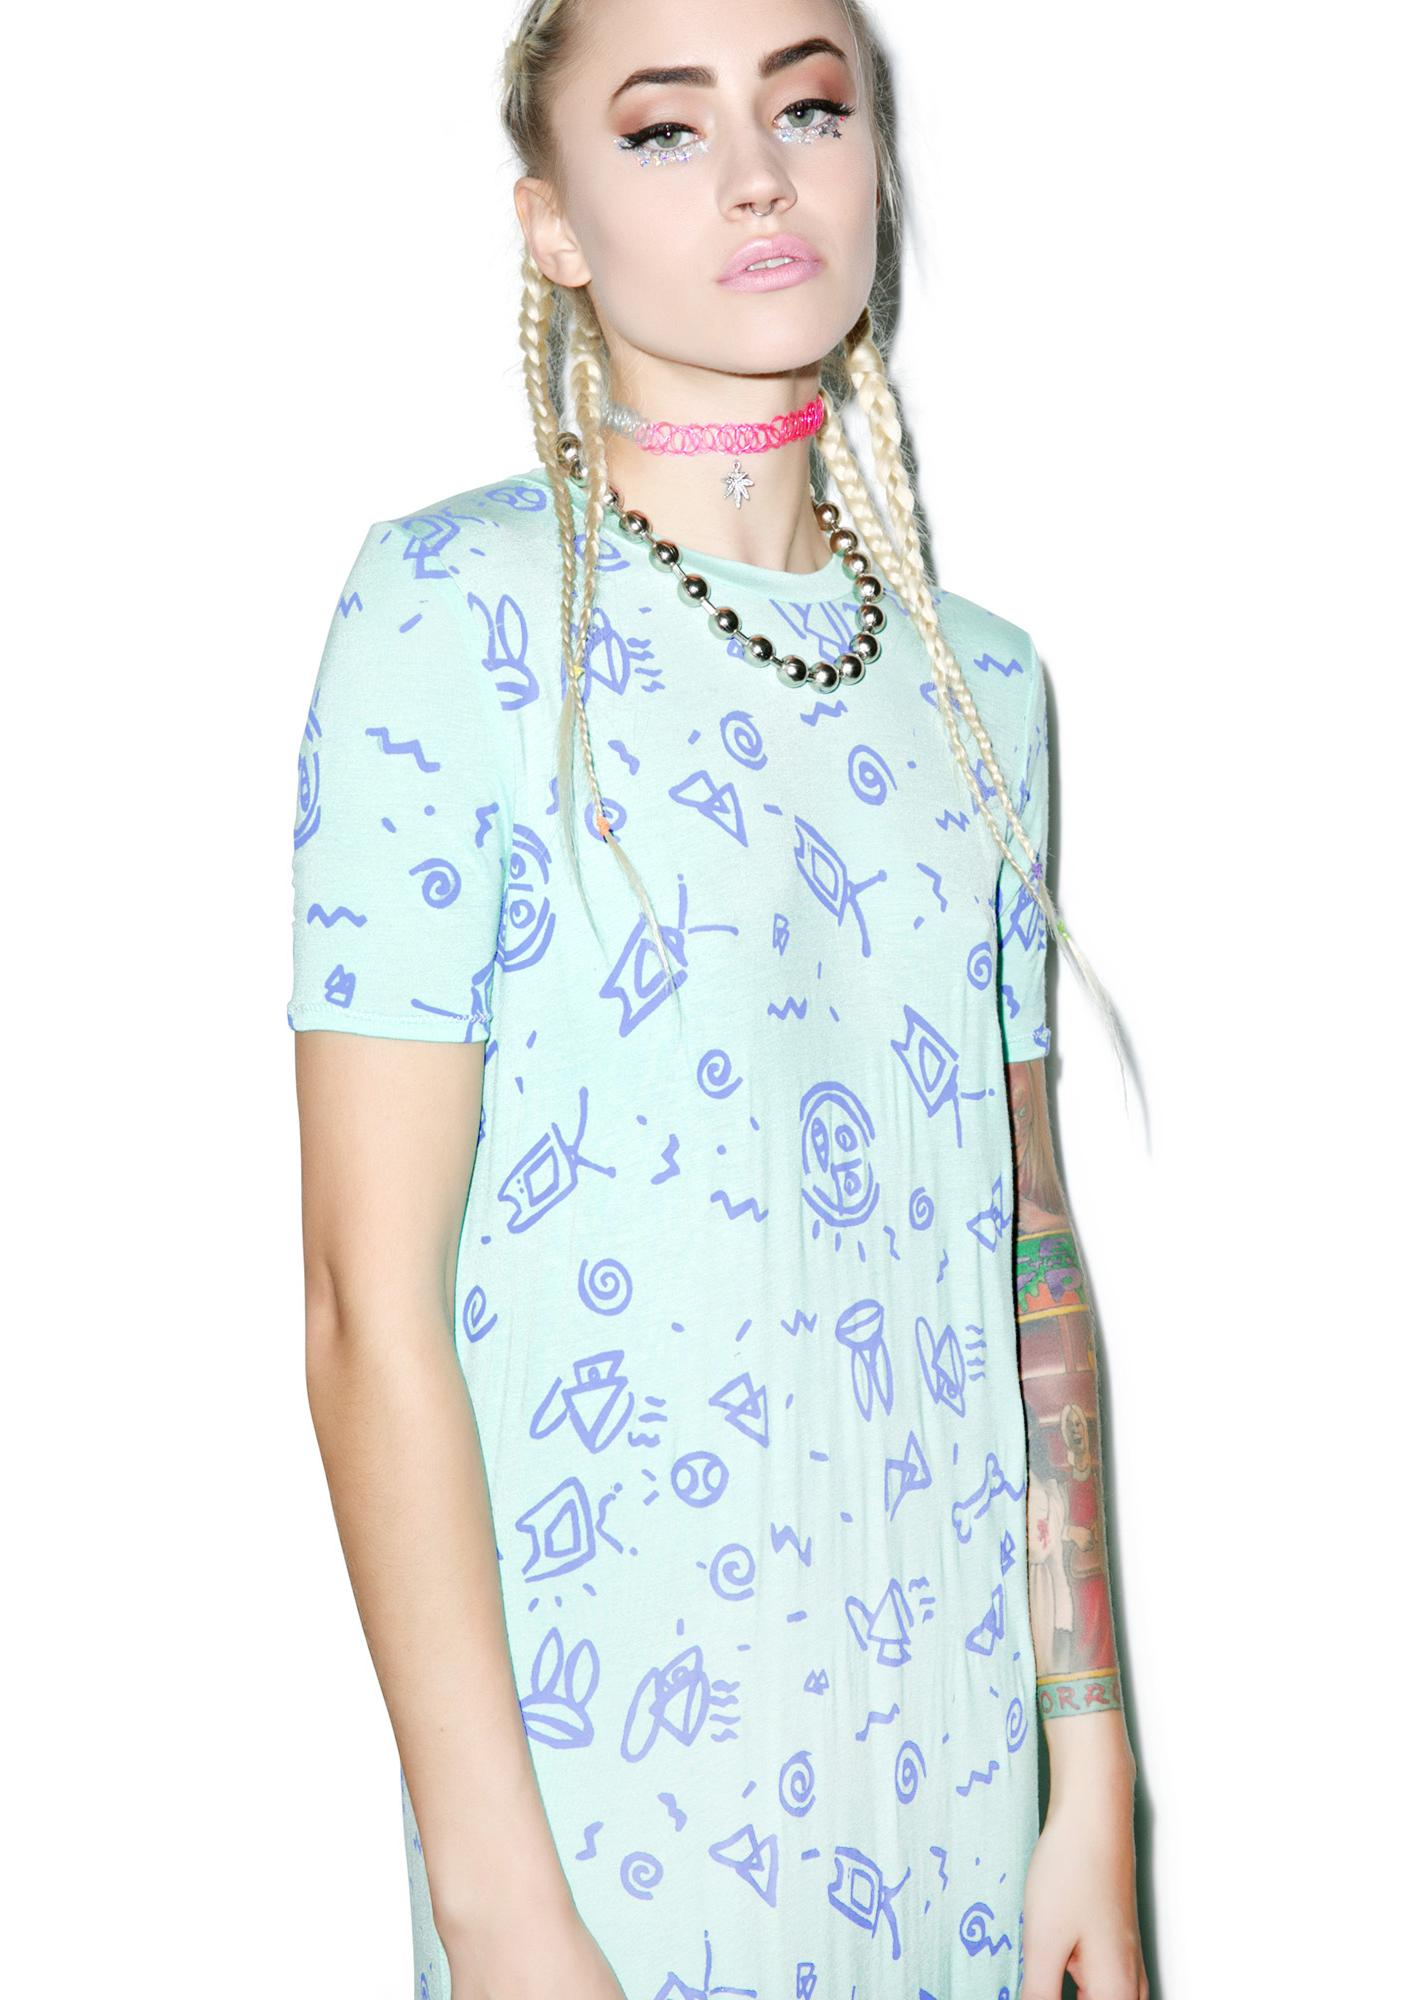 Mamadoux T-Shirt Dress